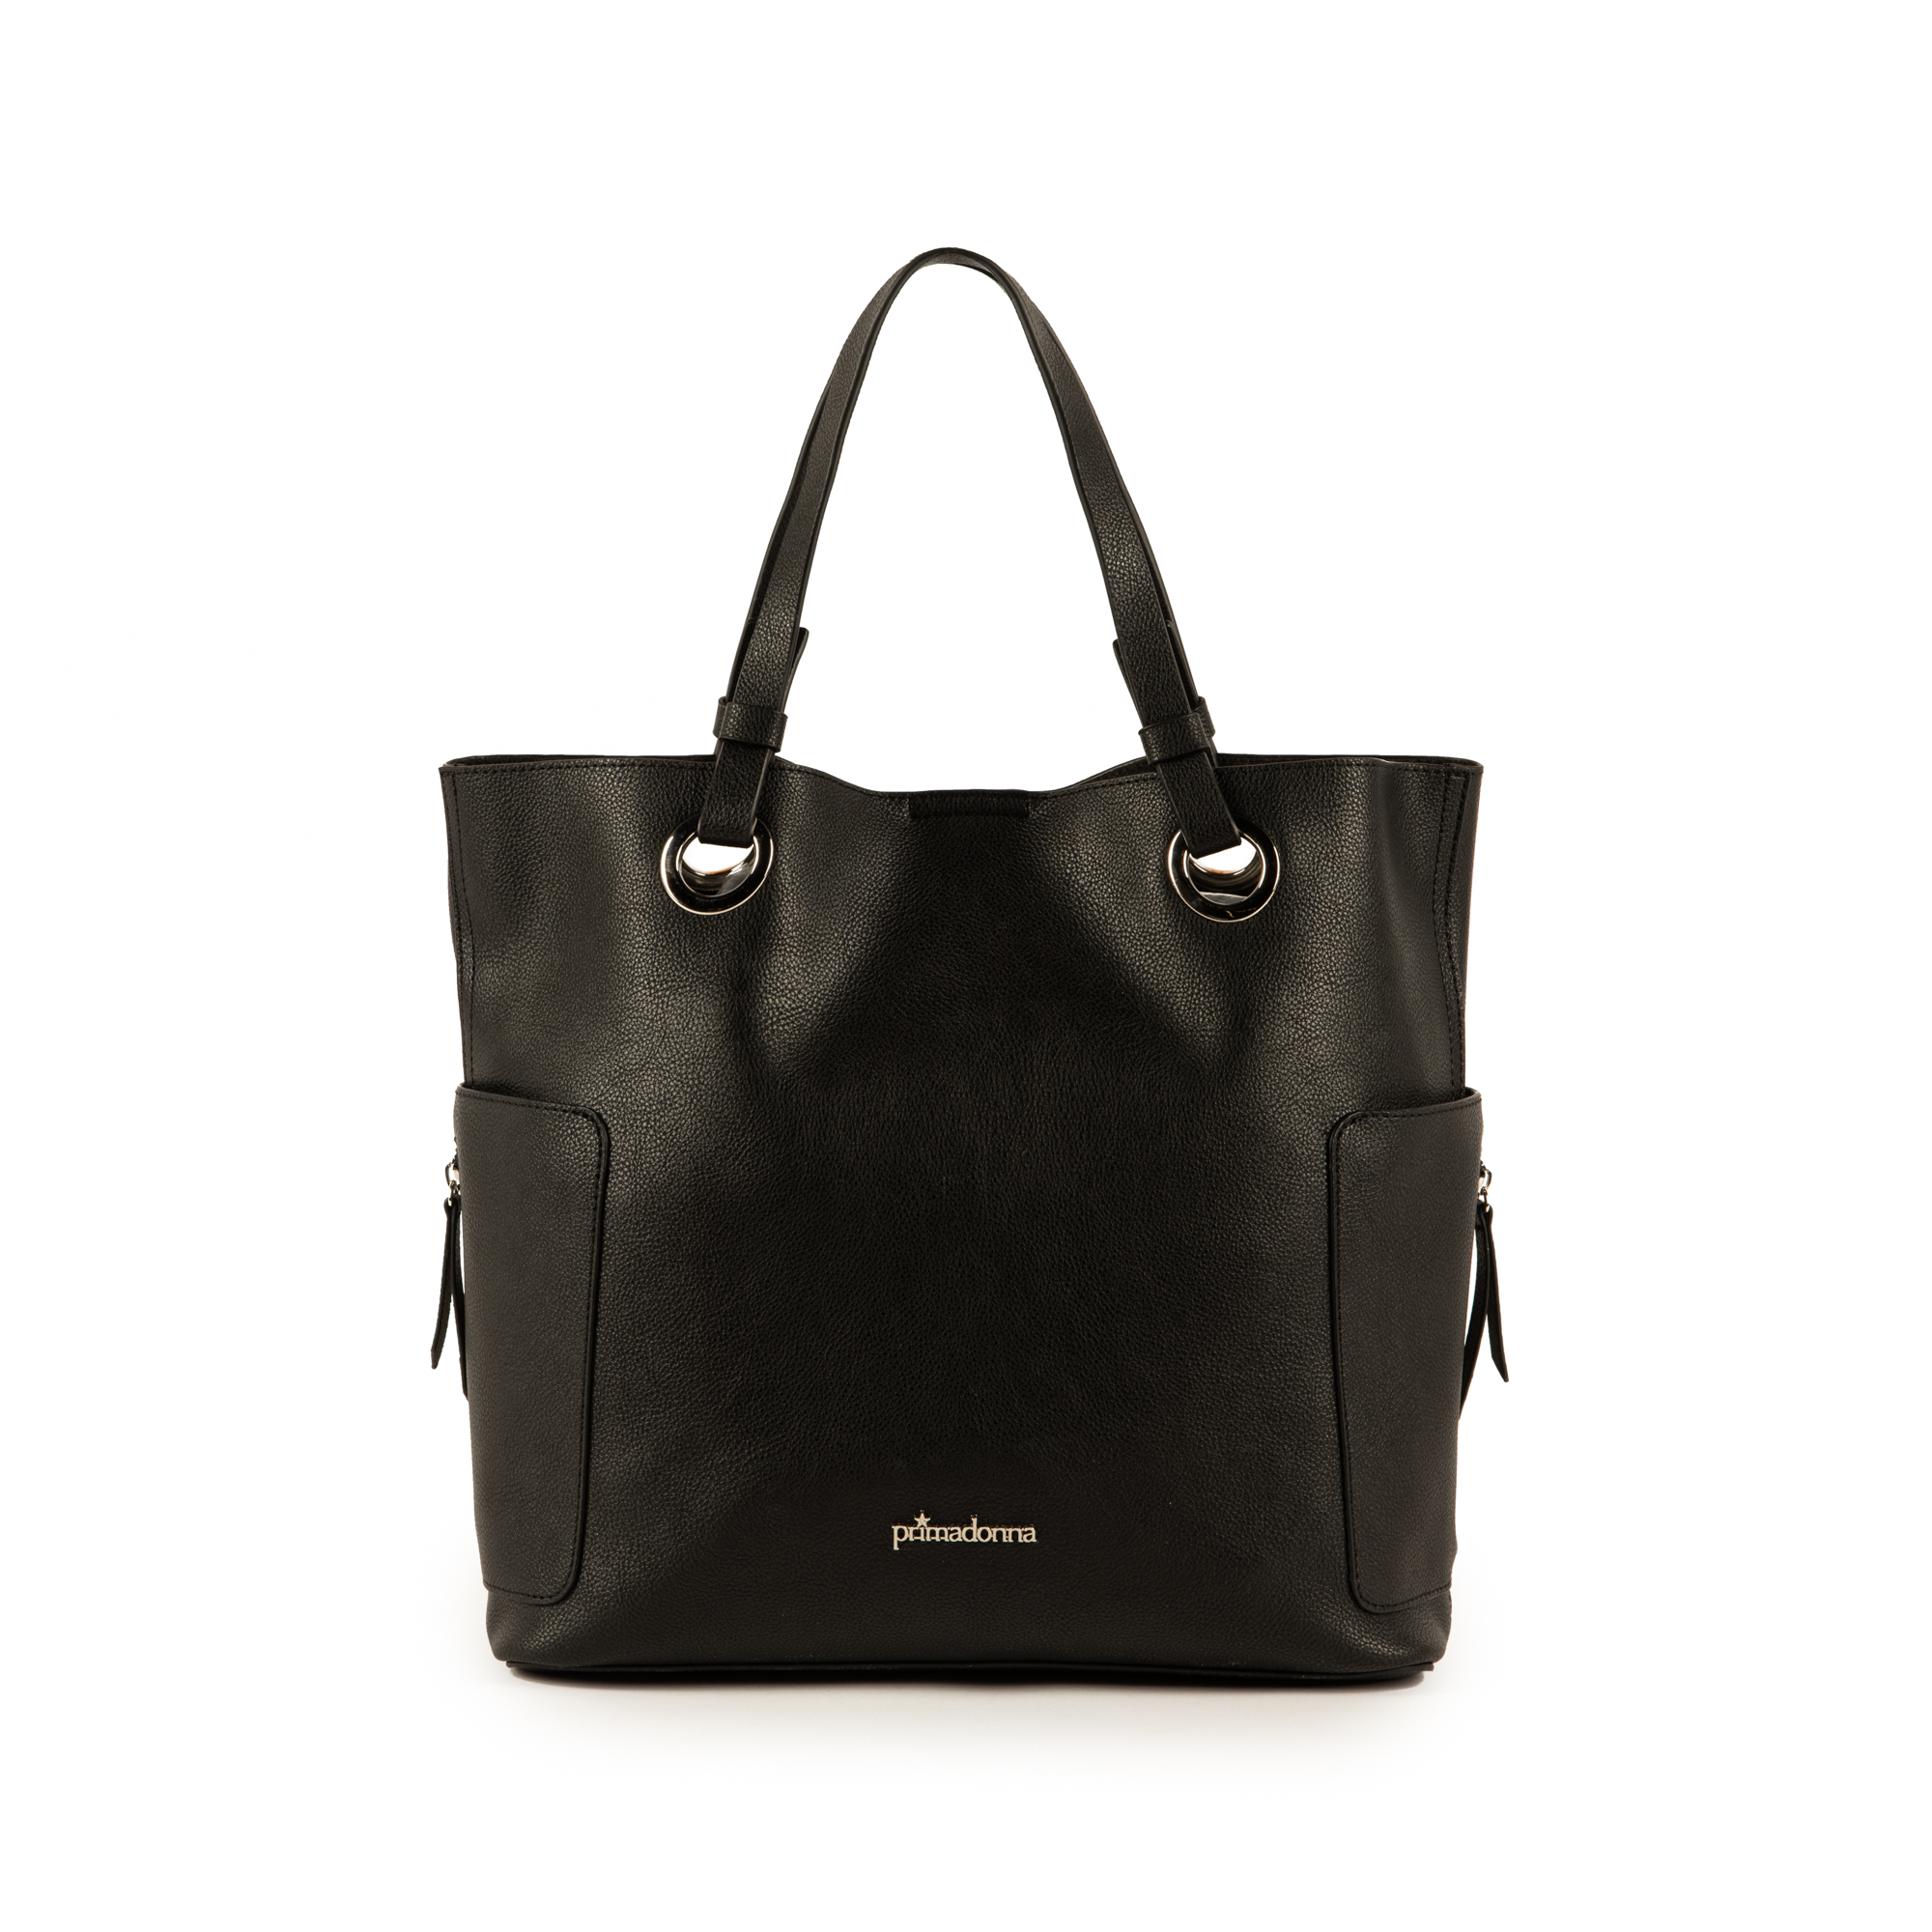 Grand sac noir en simili-cuir